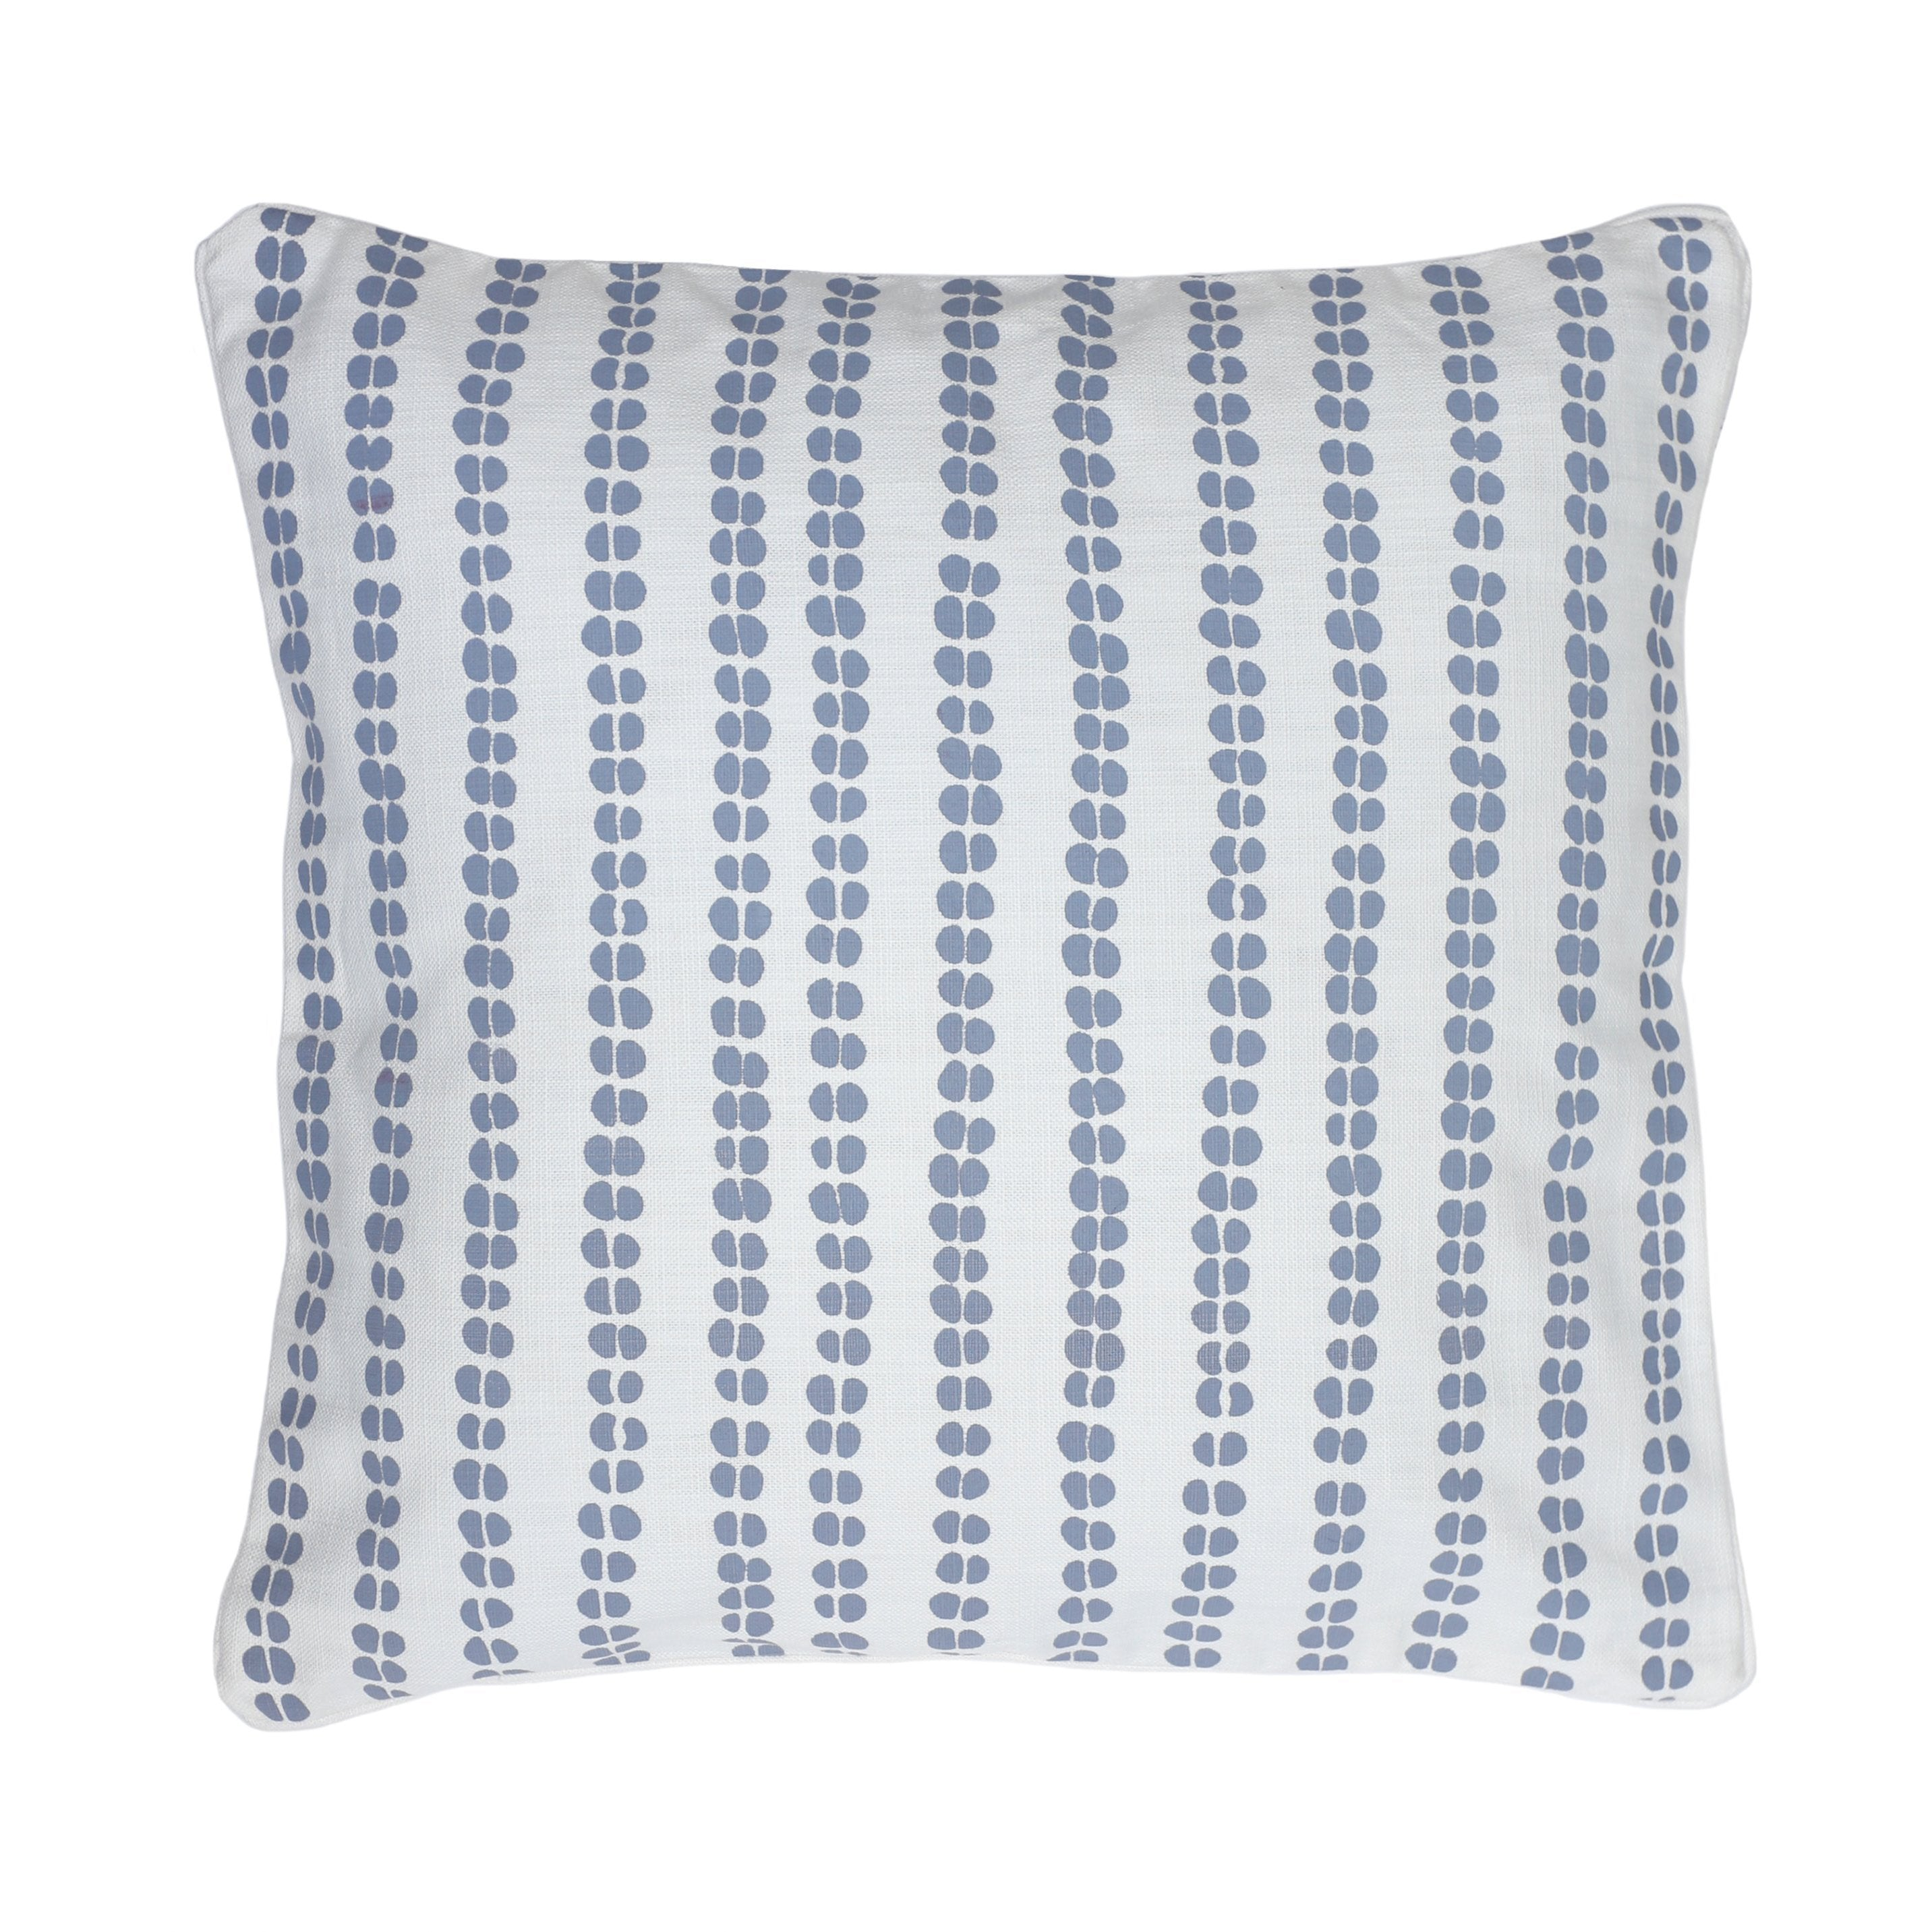 Cushion Cover ~ Runner Bean, Duck Egg on White